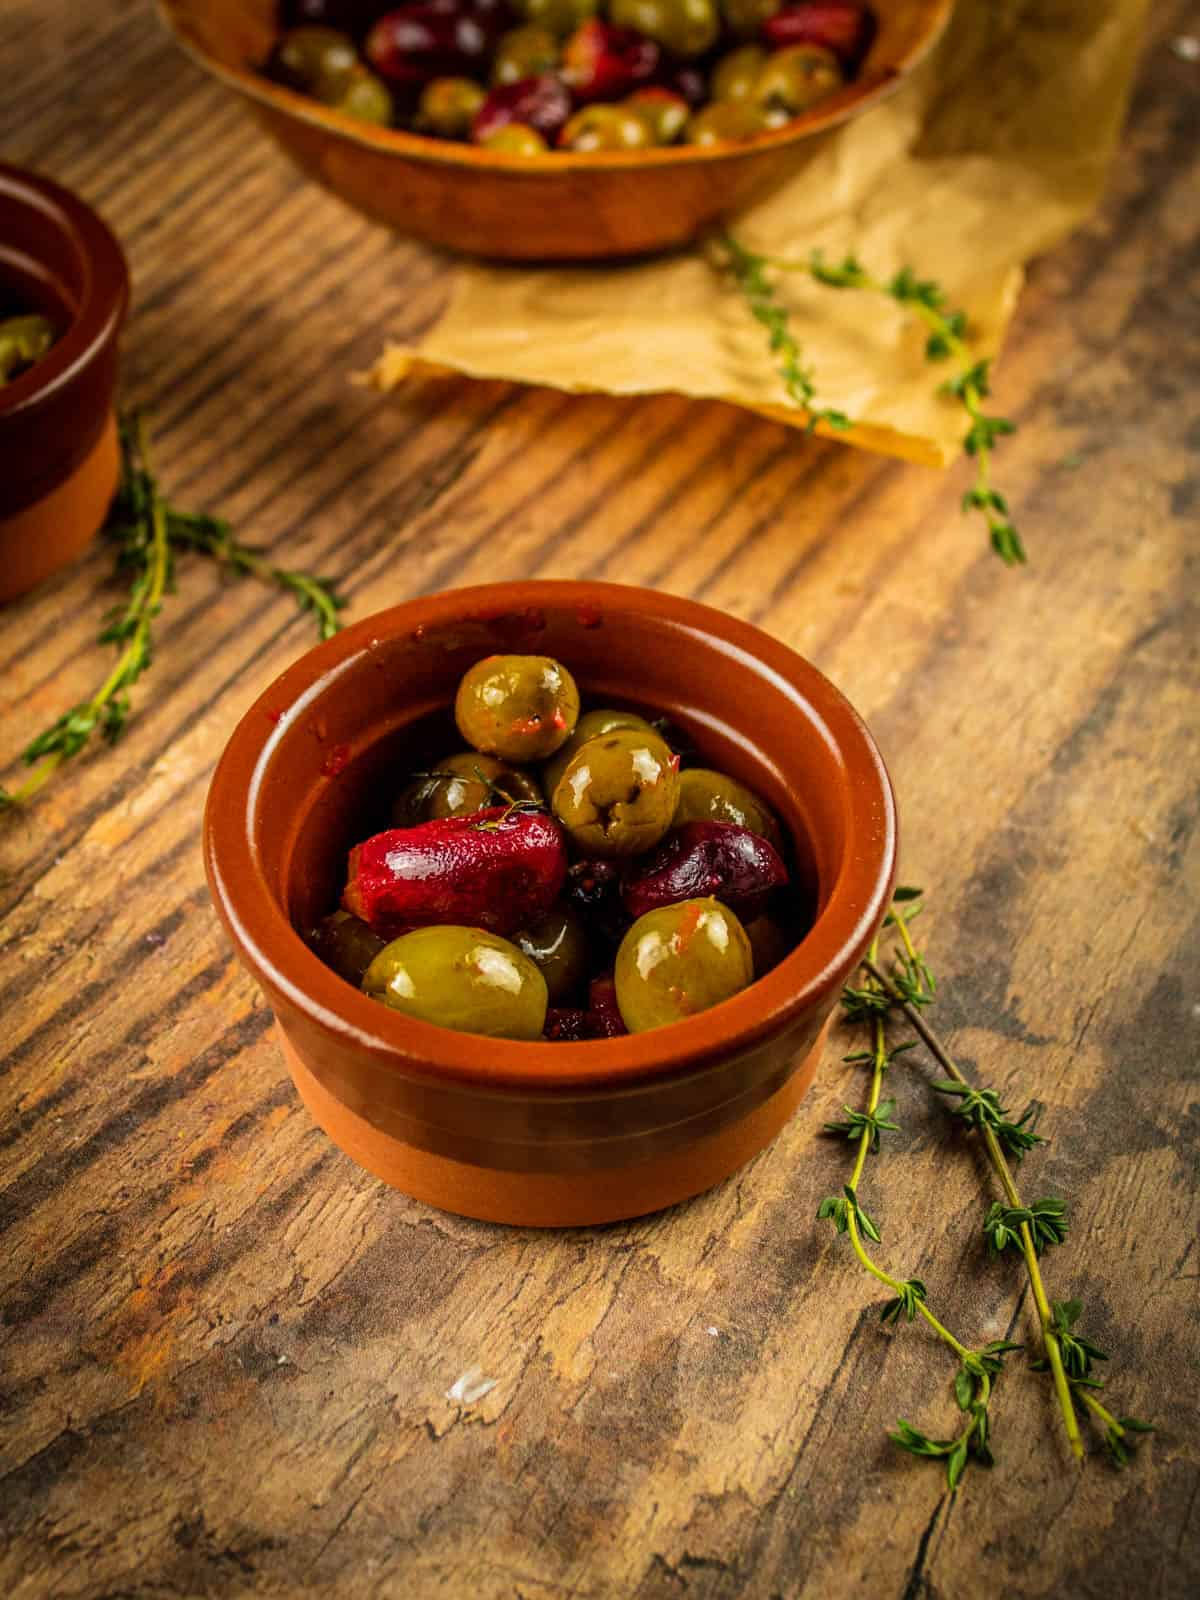 brown ceramic dish of roasted olives and grapes with a thyme sprig